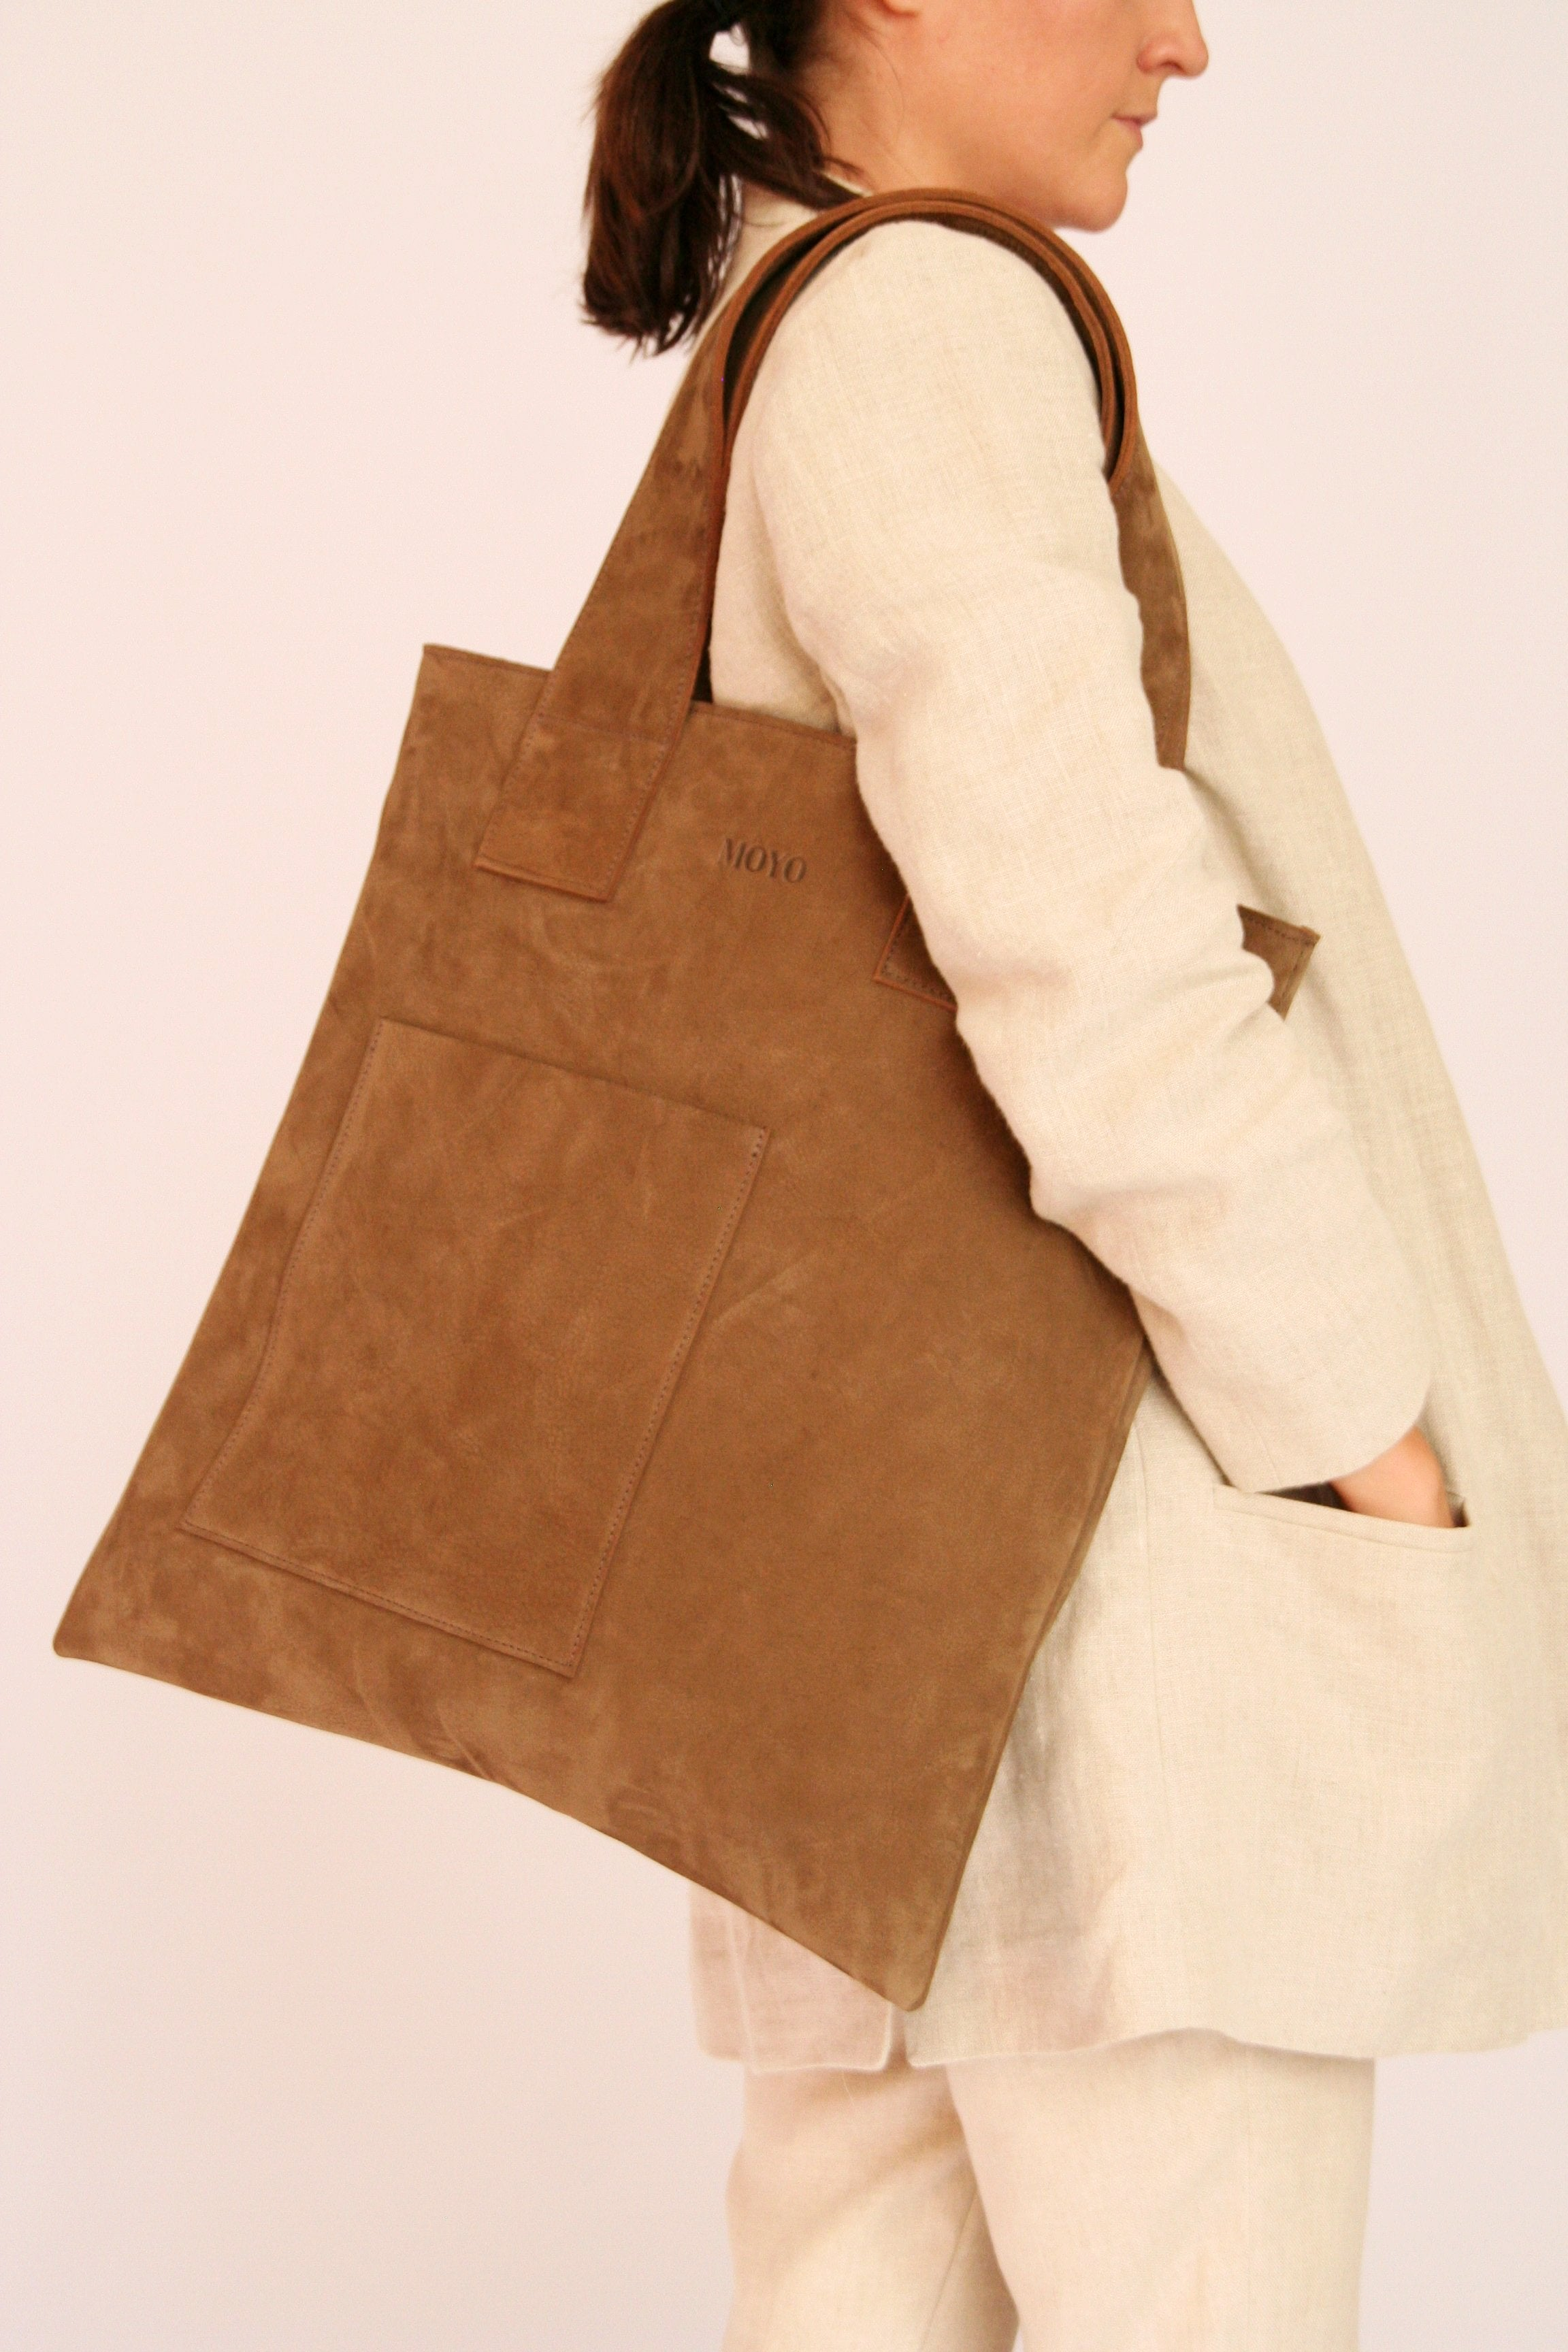 The MOYO Bag Brown